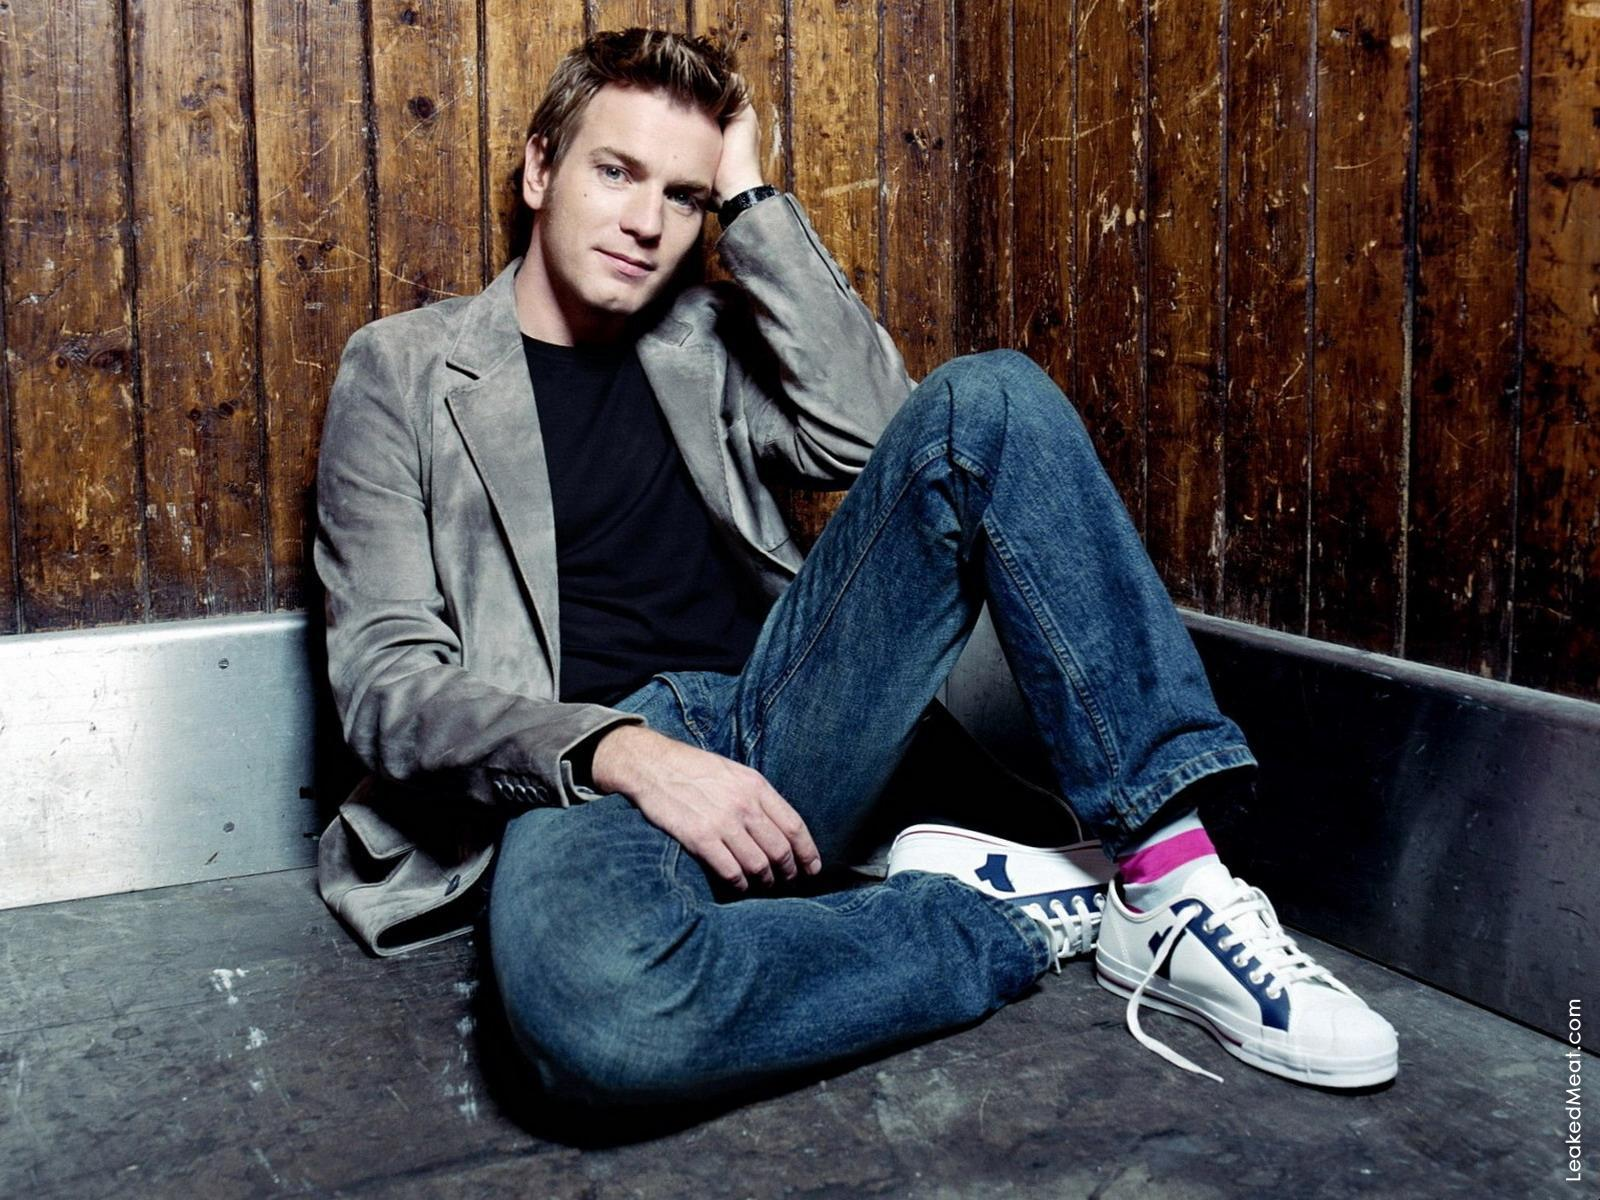 Ewan McGregor | LeakedMeat 13